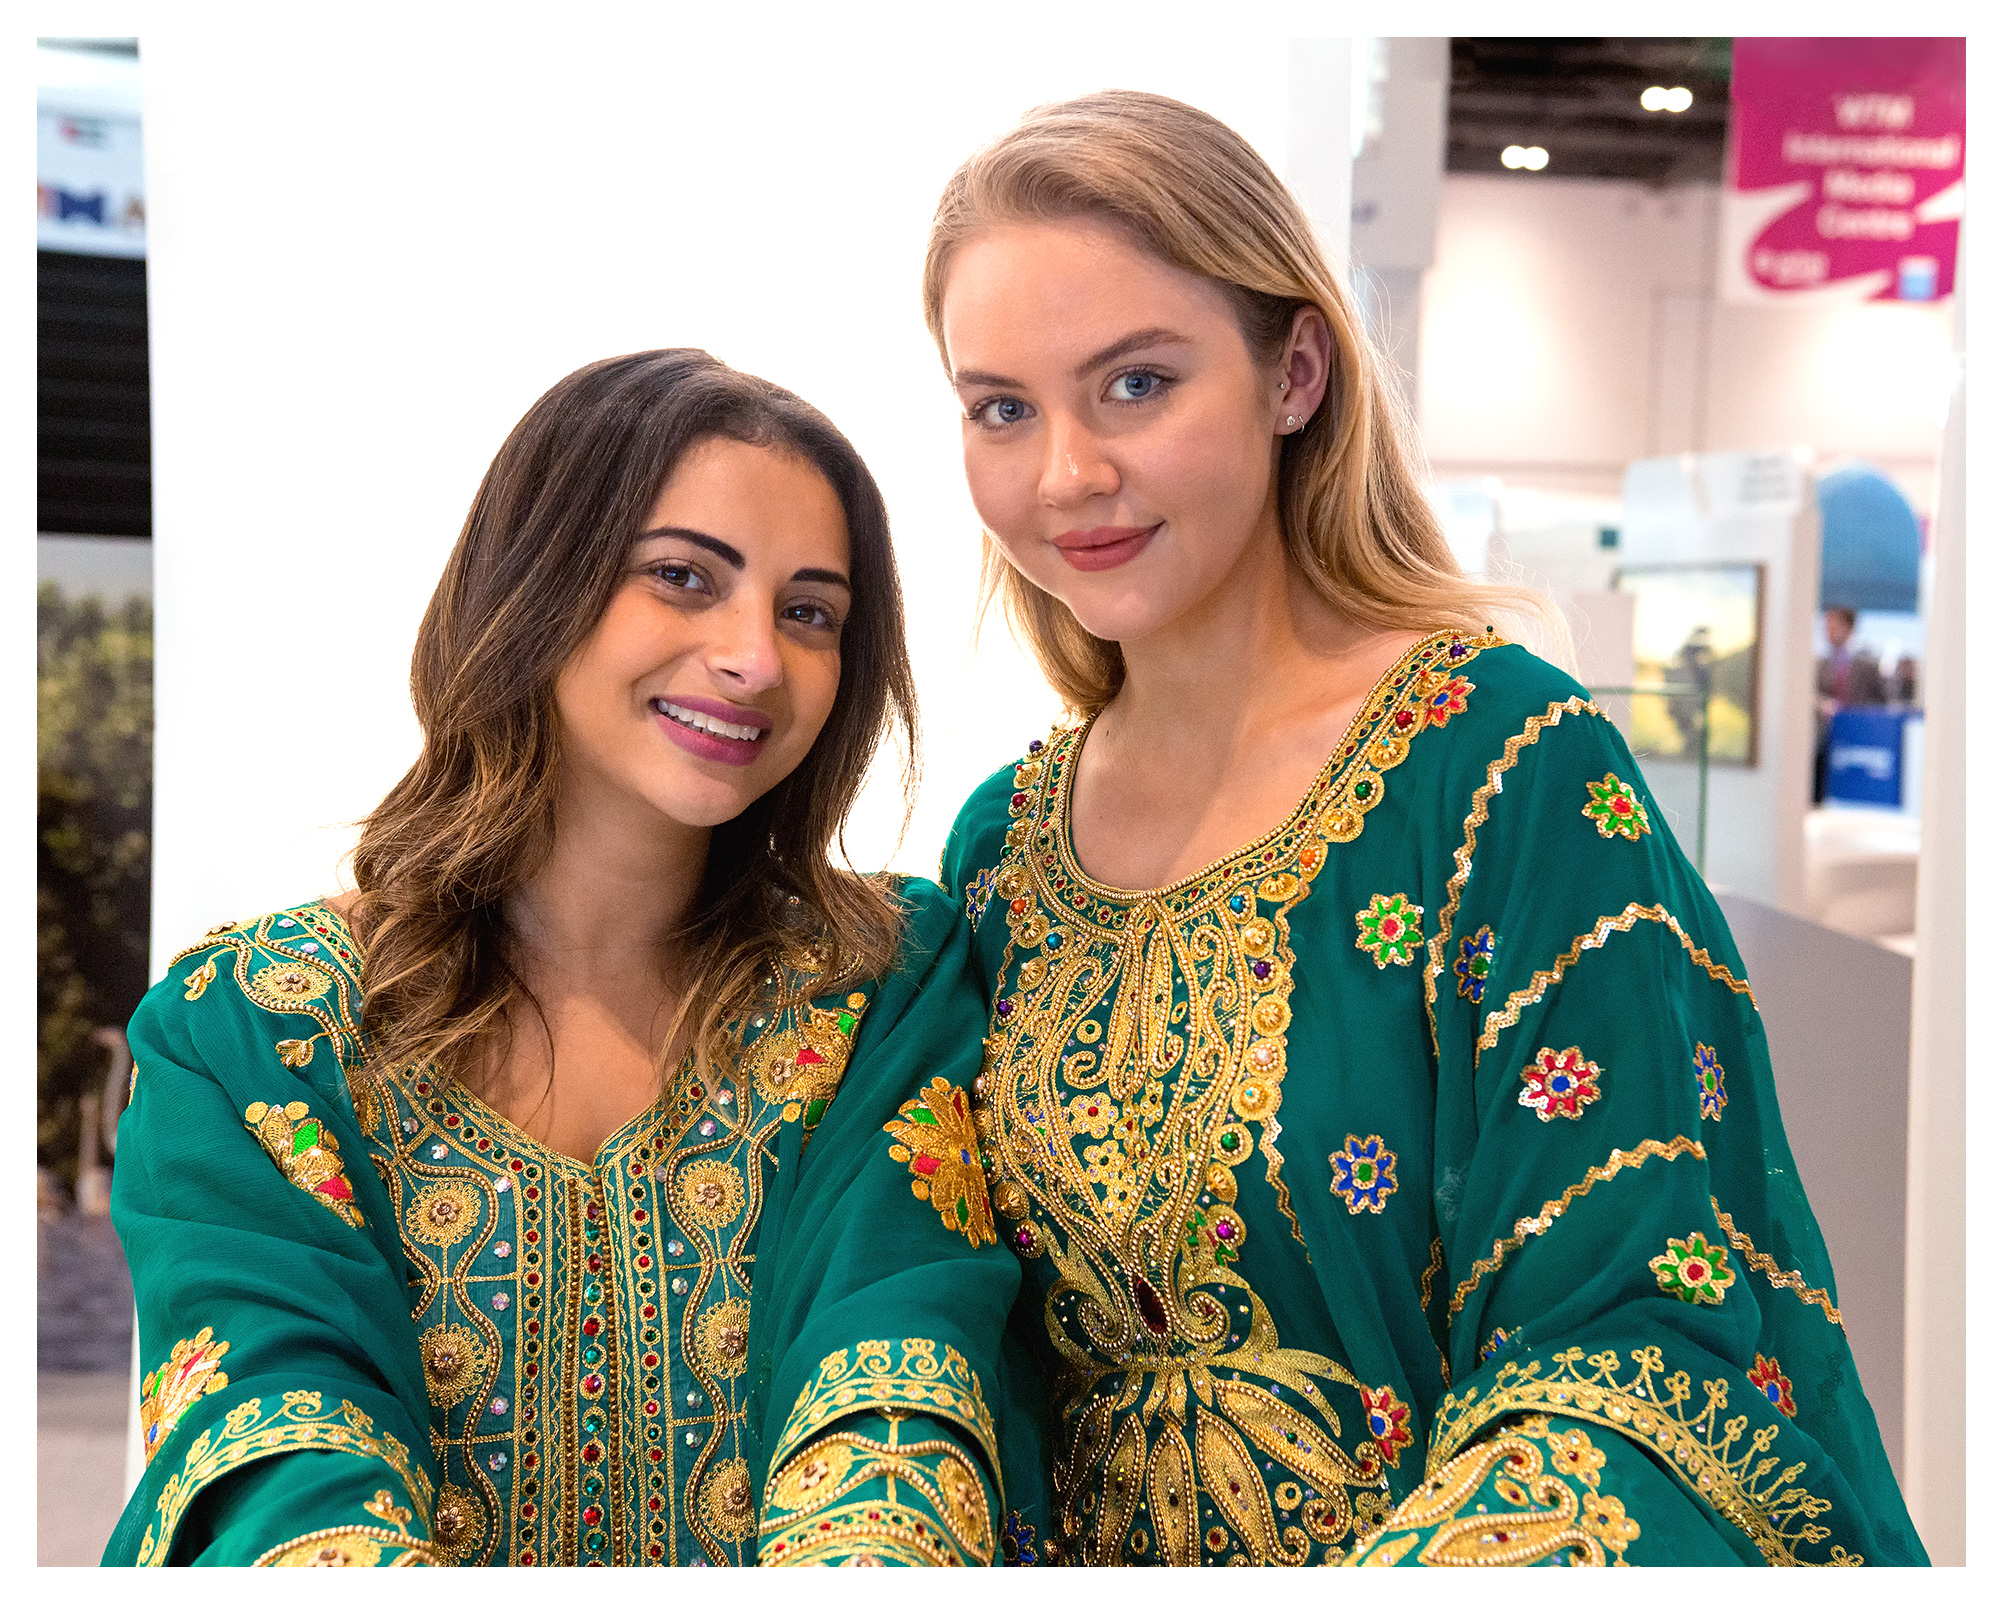 PR photography: Beautiful hostesses, World Travel Market 2018, ExCel London